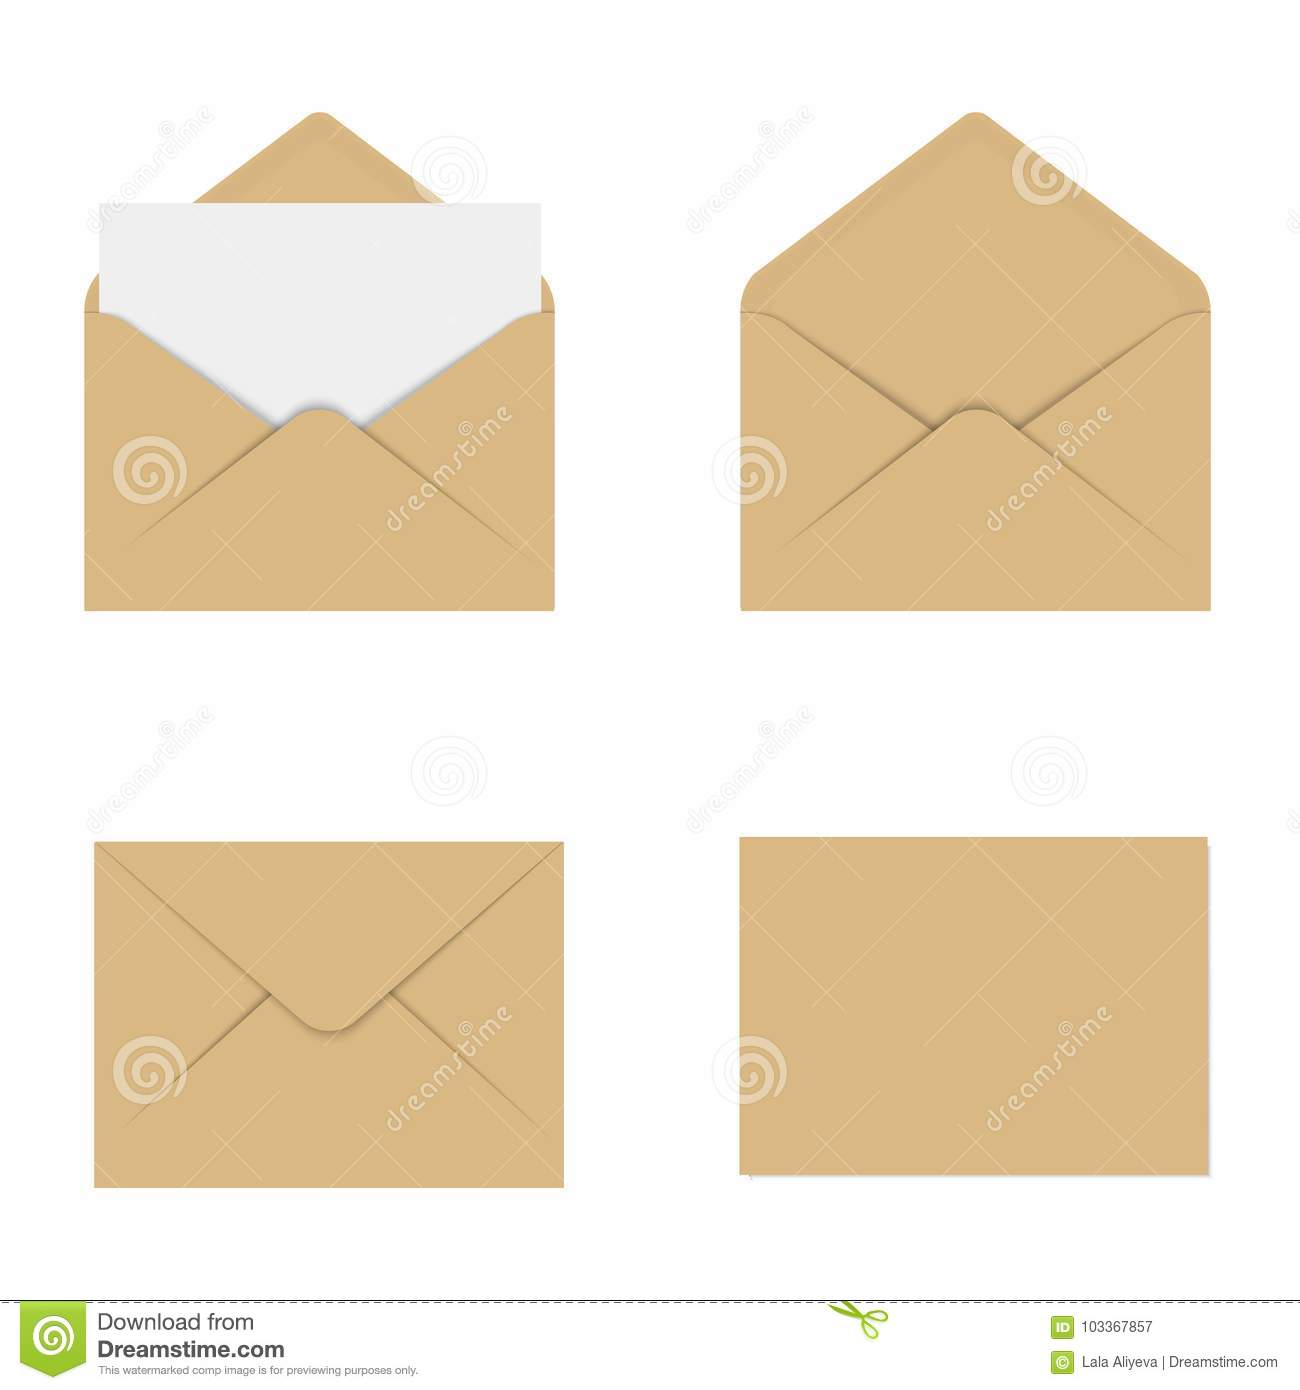 Realistic brown mockup envelope for letter or invitation card download realistic brown mockup envelope for letter or invitation card vector stock illustration illustration stopboris Image collections